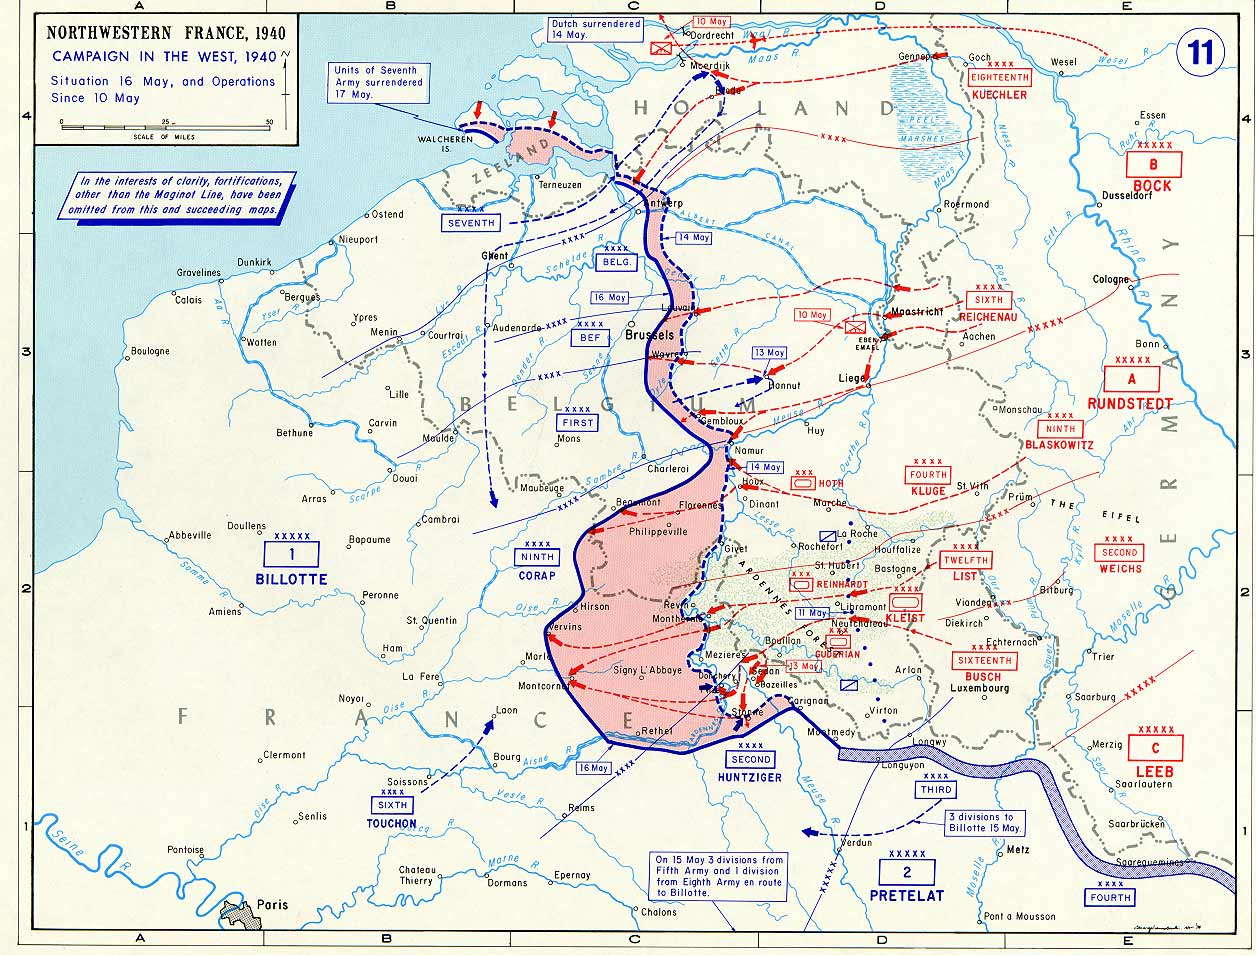 Map Of France 1940.Map Of Northwestern France May 1940